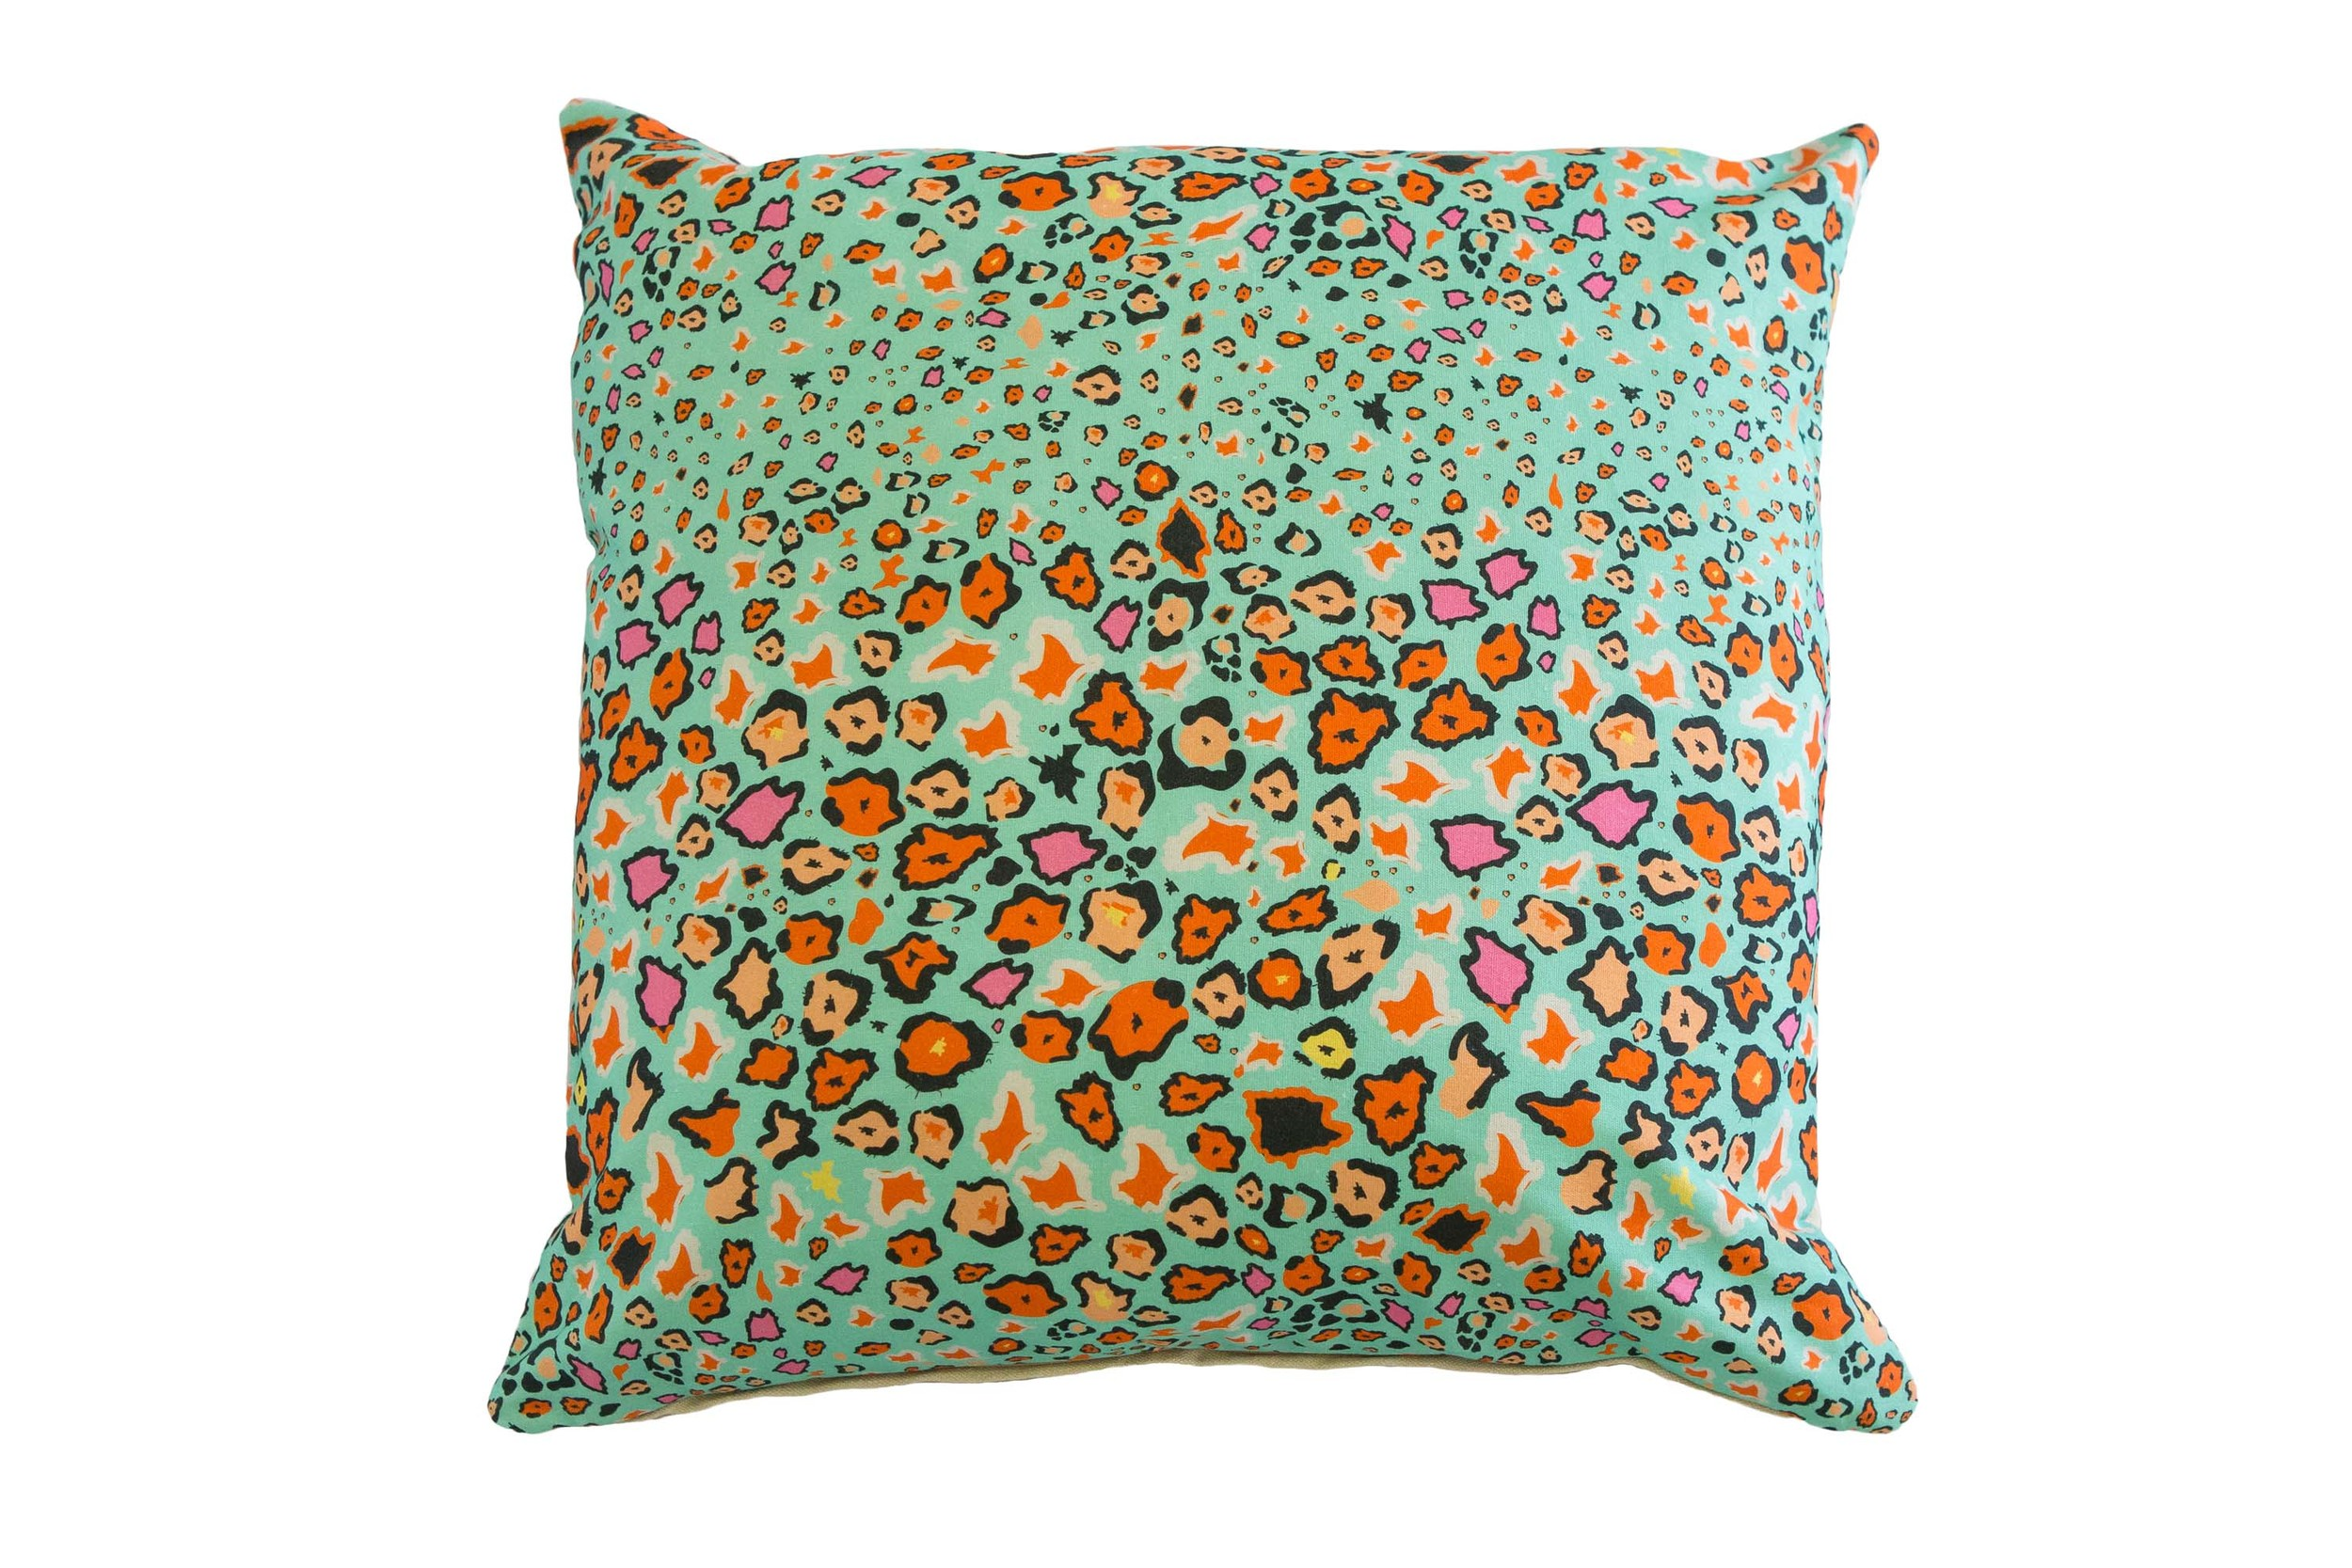 Leopard Lights cushion : leopard print + colour pop = home decor win